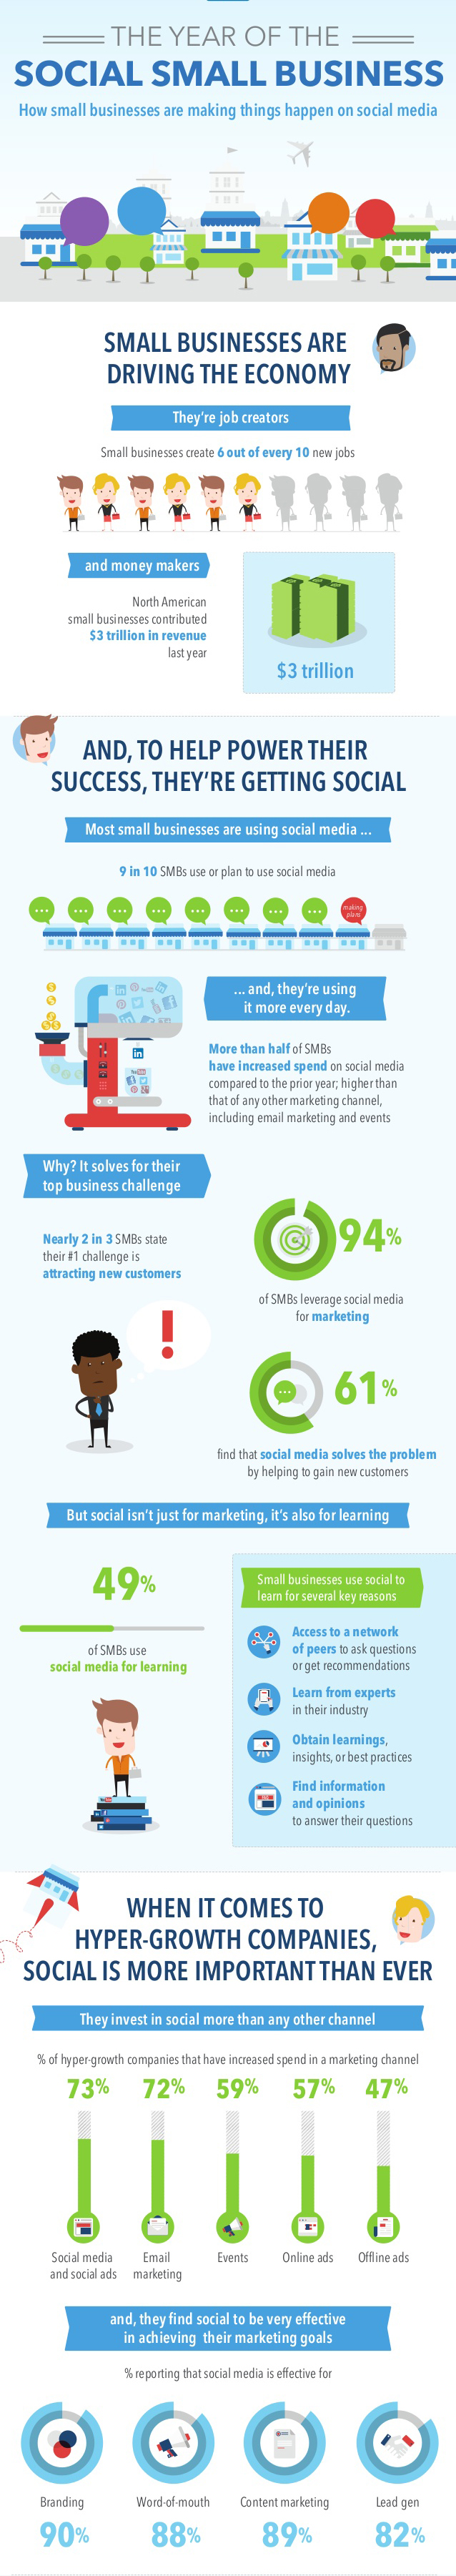 Small Businesses Use Social Media Infographic